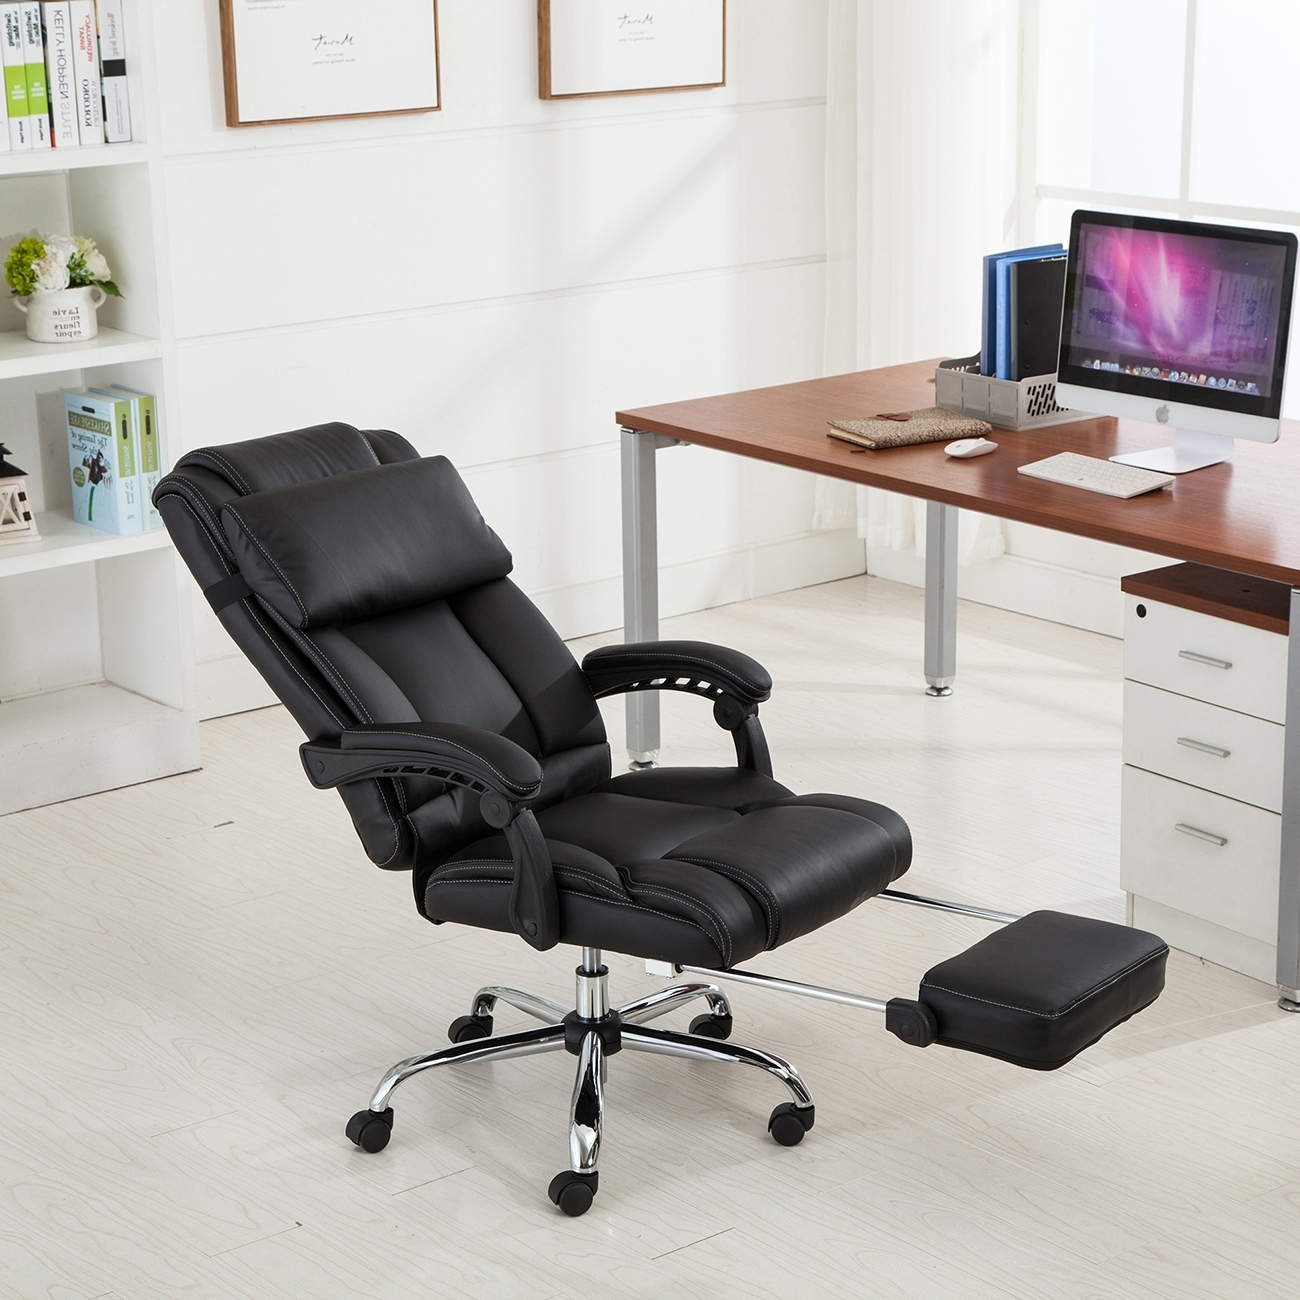 Lounge Chairs And Office Chairs Inside Executive Office Chairs With Leg Rest (View 10 of 20)